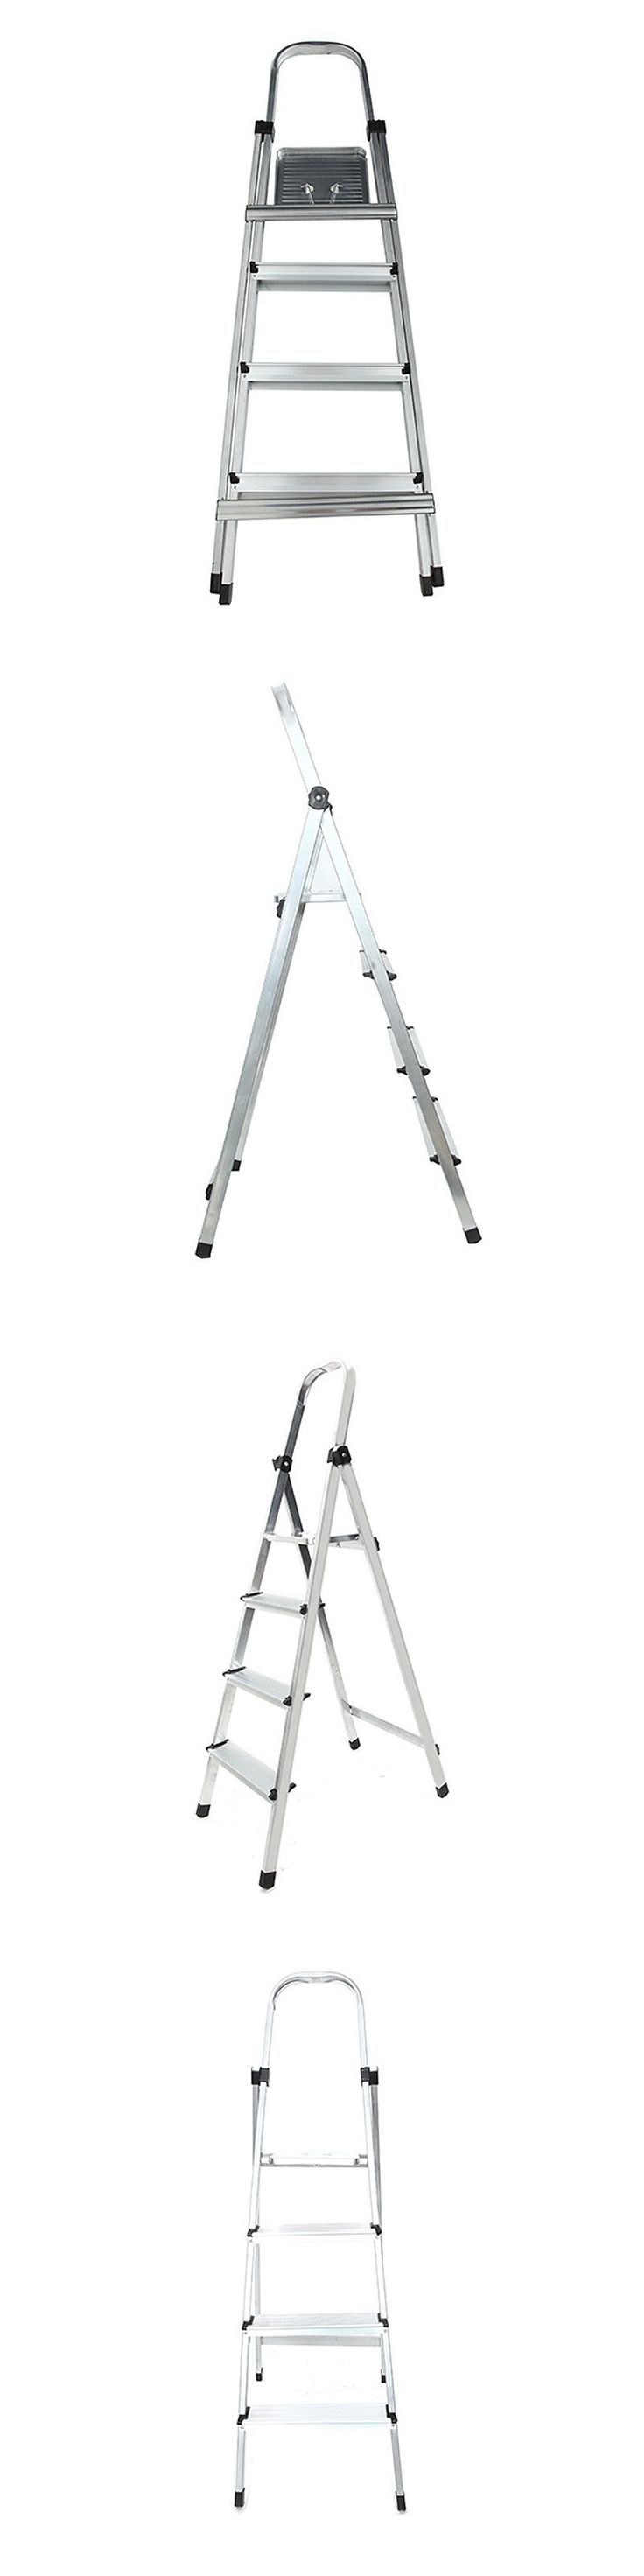 Ladders 112567: Portable 4 Step Folding Ladder Household Office Foldable Multi Purpose Aluminum -> BUY IT NOW ONLY: $33.98 on eBay!